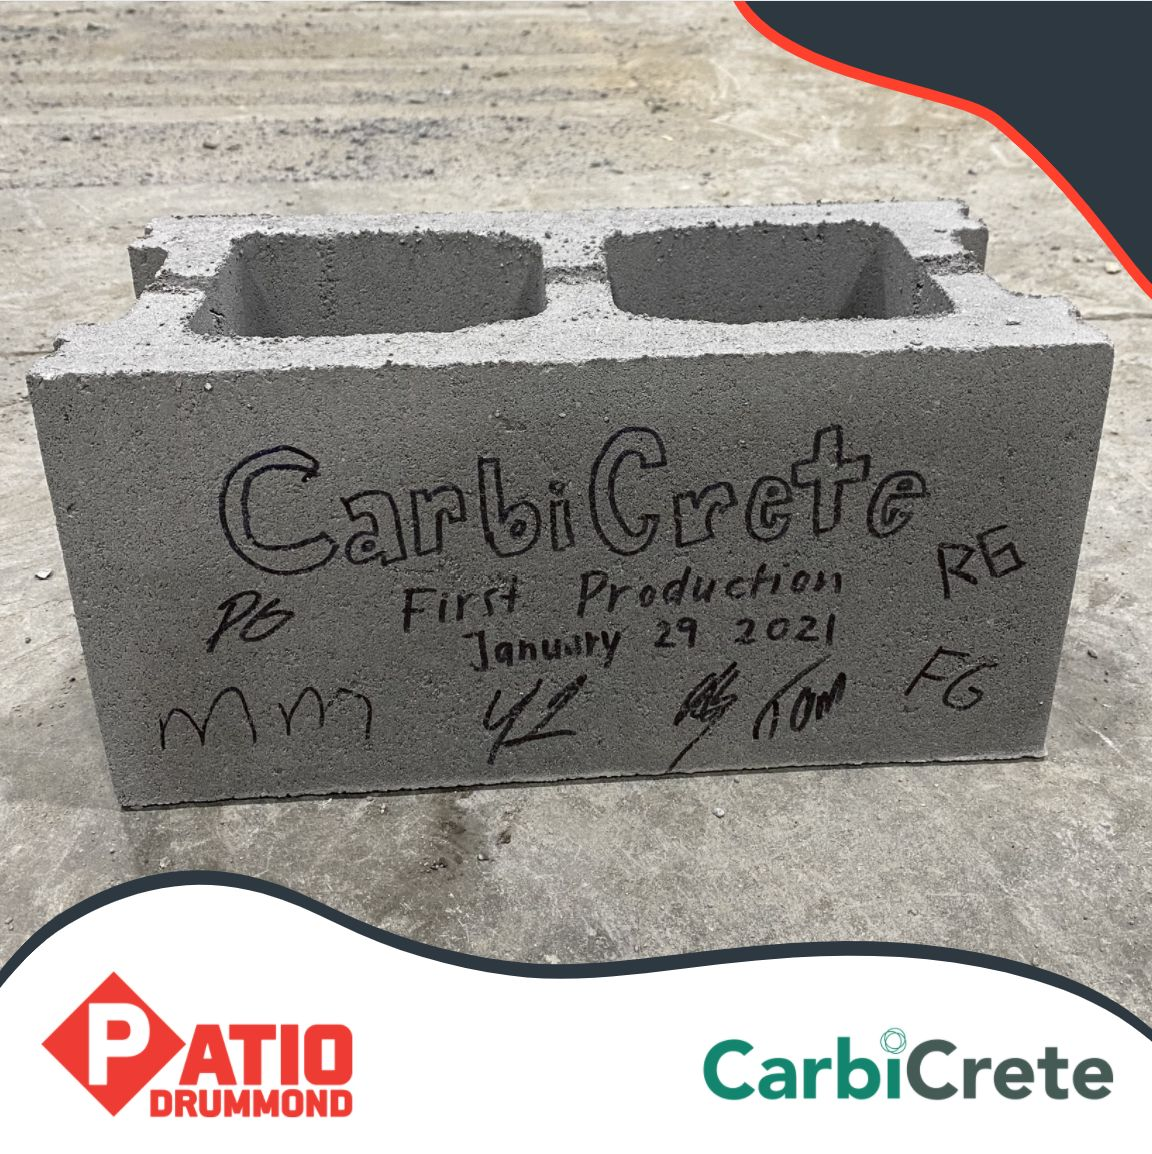 Carbon Negative Concrete CMU Blocks - Now in Production in Quebec